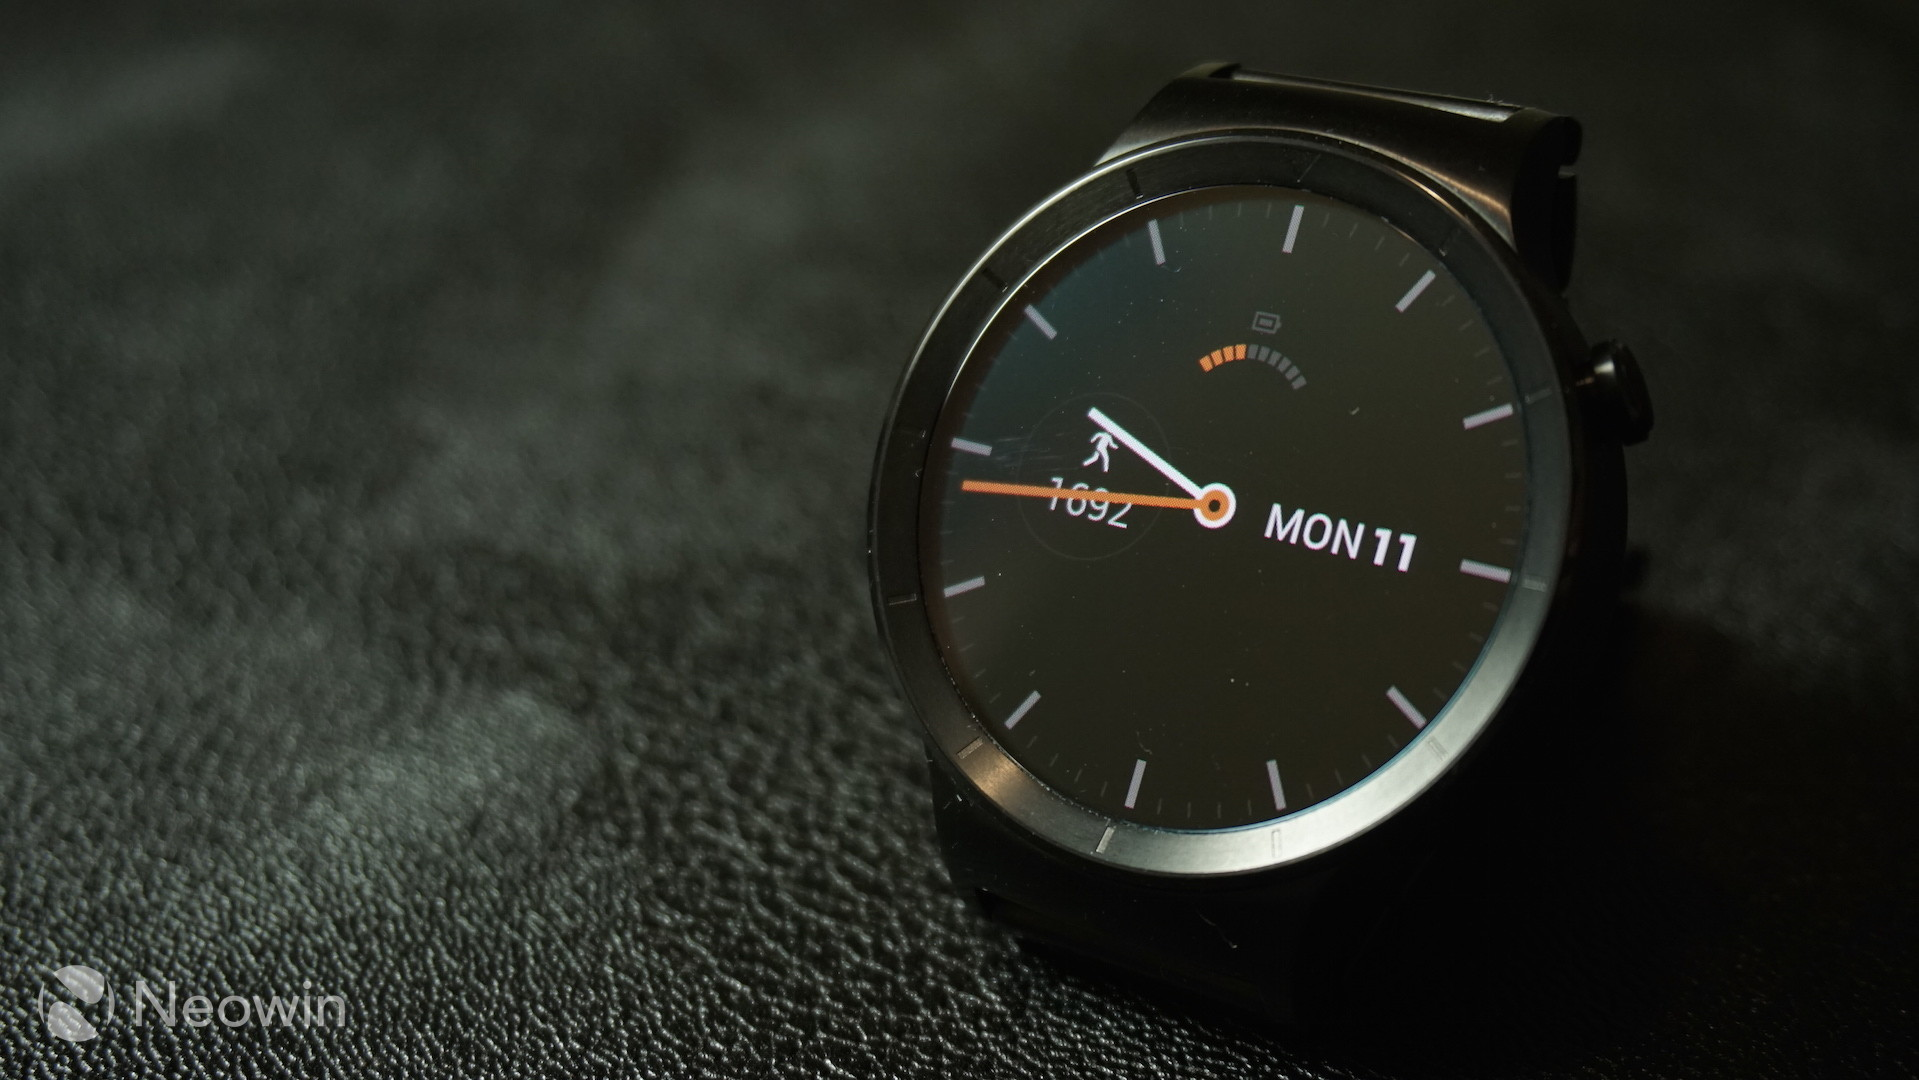 First 24 Hands On With The Huawei Watch Neowin Smart Black Stainless Steel After Pairing Android Wear Will Perform Needed Updates And Also Download Compatible Apps From Your Phone To